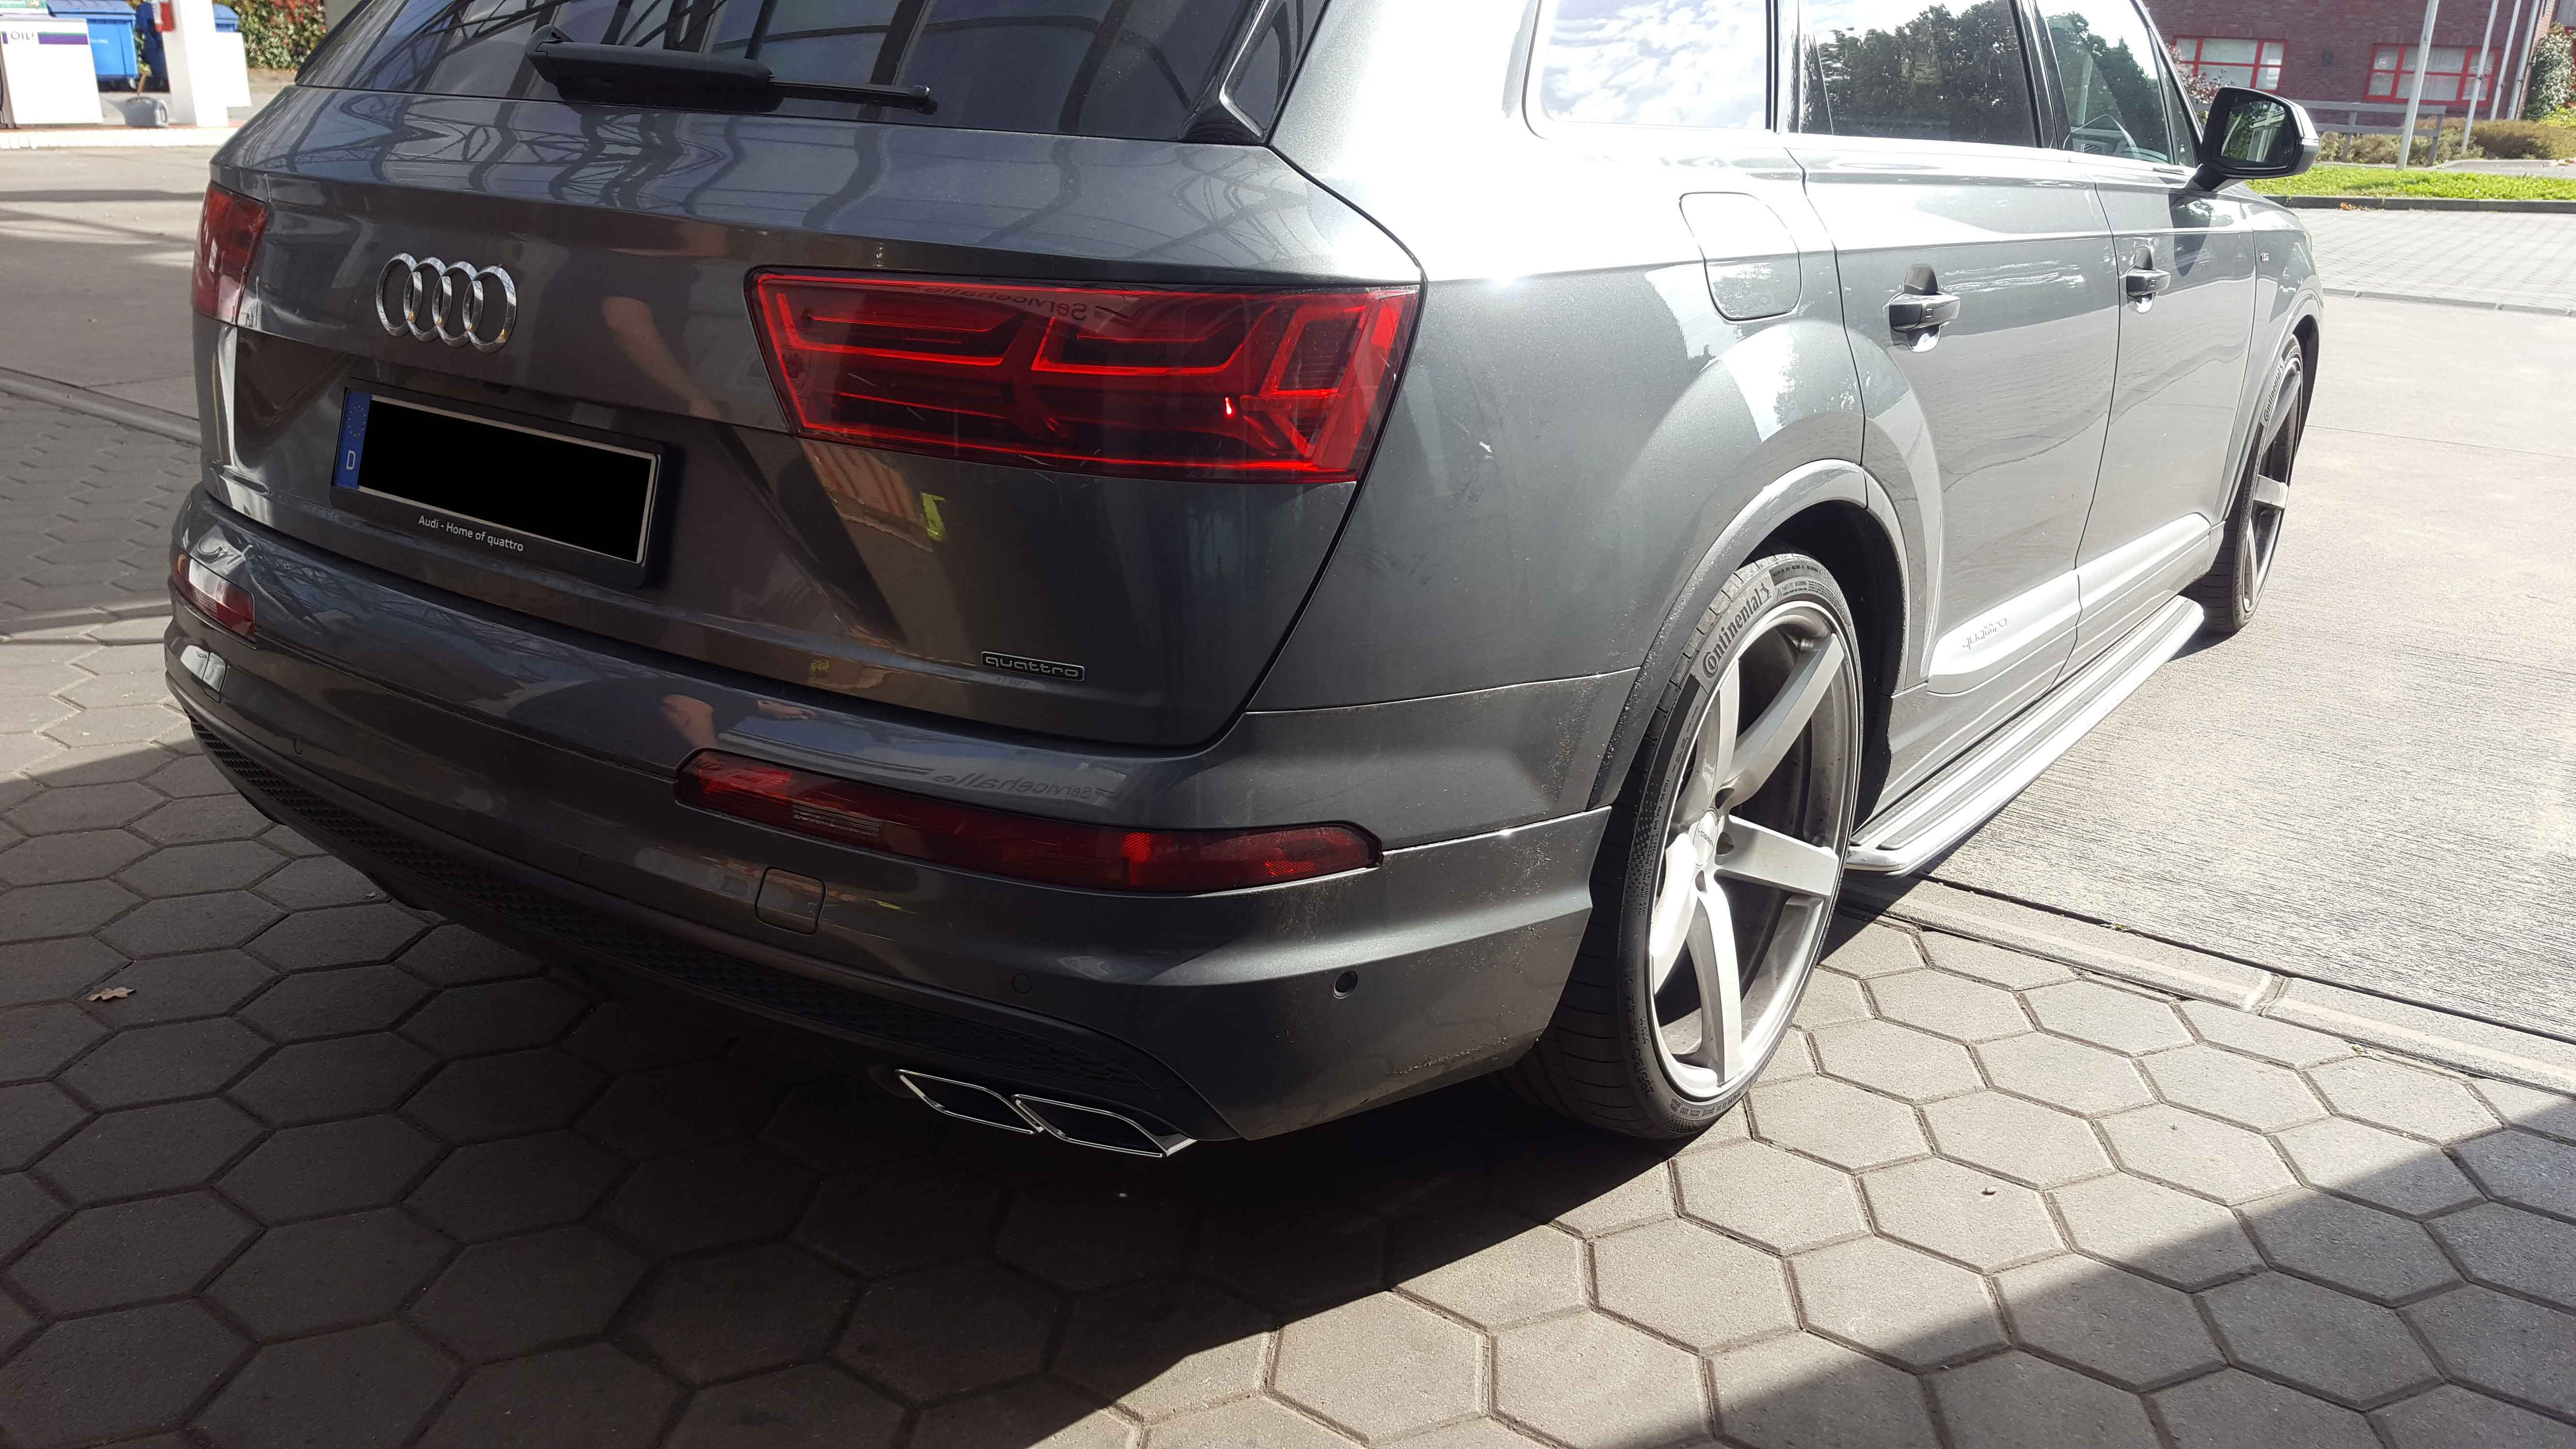 Audi Q7 4M - SQ7 remodeling - Active Sound retrofitting and